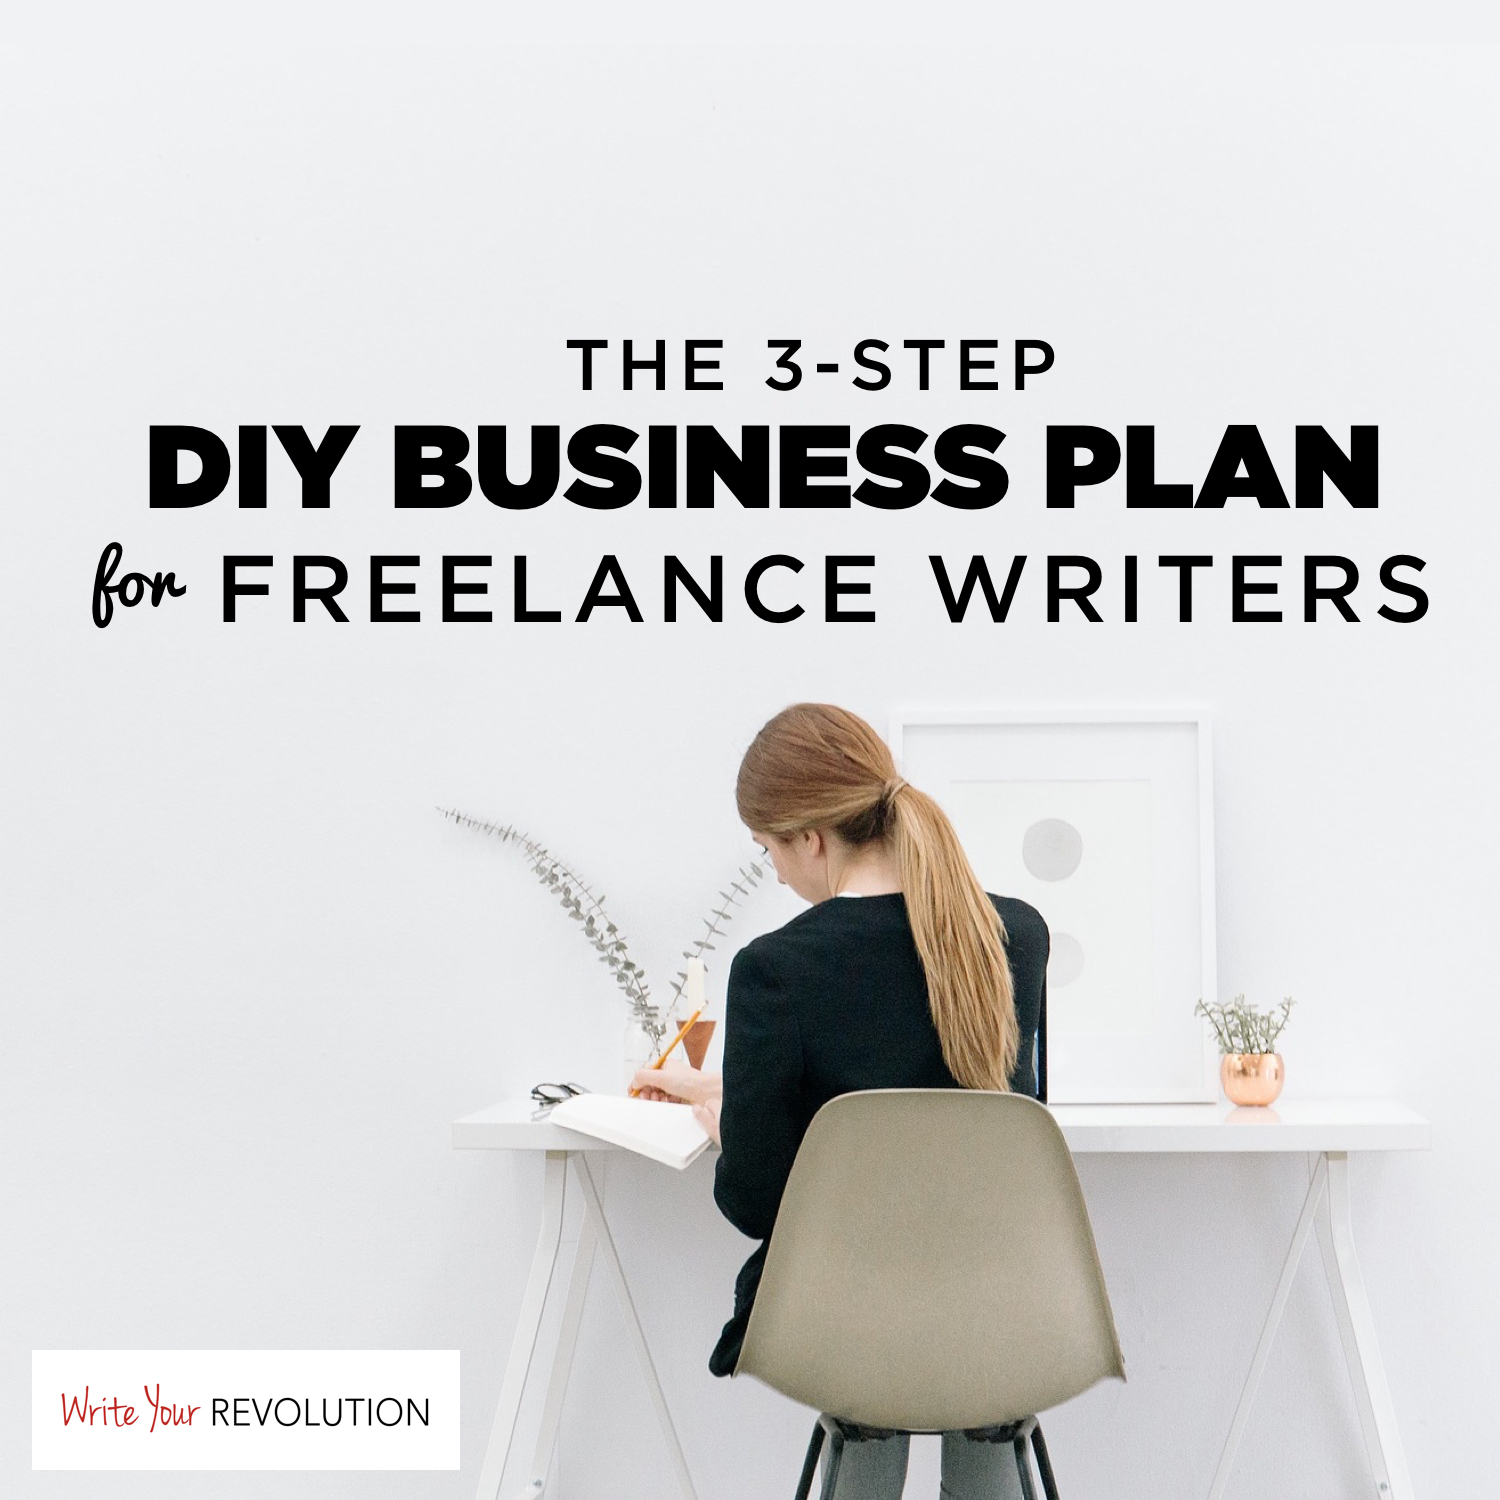 The 3-Step DIY Business Plan for Freelance Writers